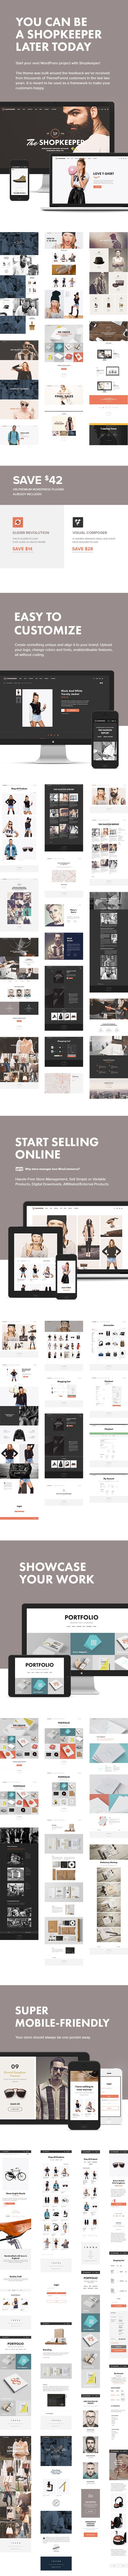 Shopkeeper is a Premium WordPress theme built with the eCommerce functionality in mind. Crafted by an Elite ThemeForest Author, Shopkeeper is an amazingly sleek and modern theme: http://themeforest.net/item/shopkeeper-responsive-wordpress-theme/9553045?ref=getbowtied